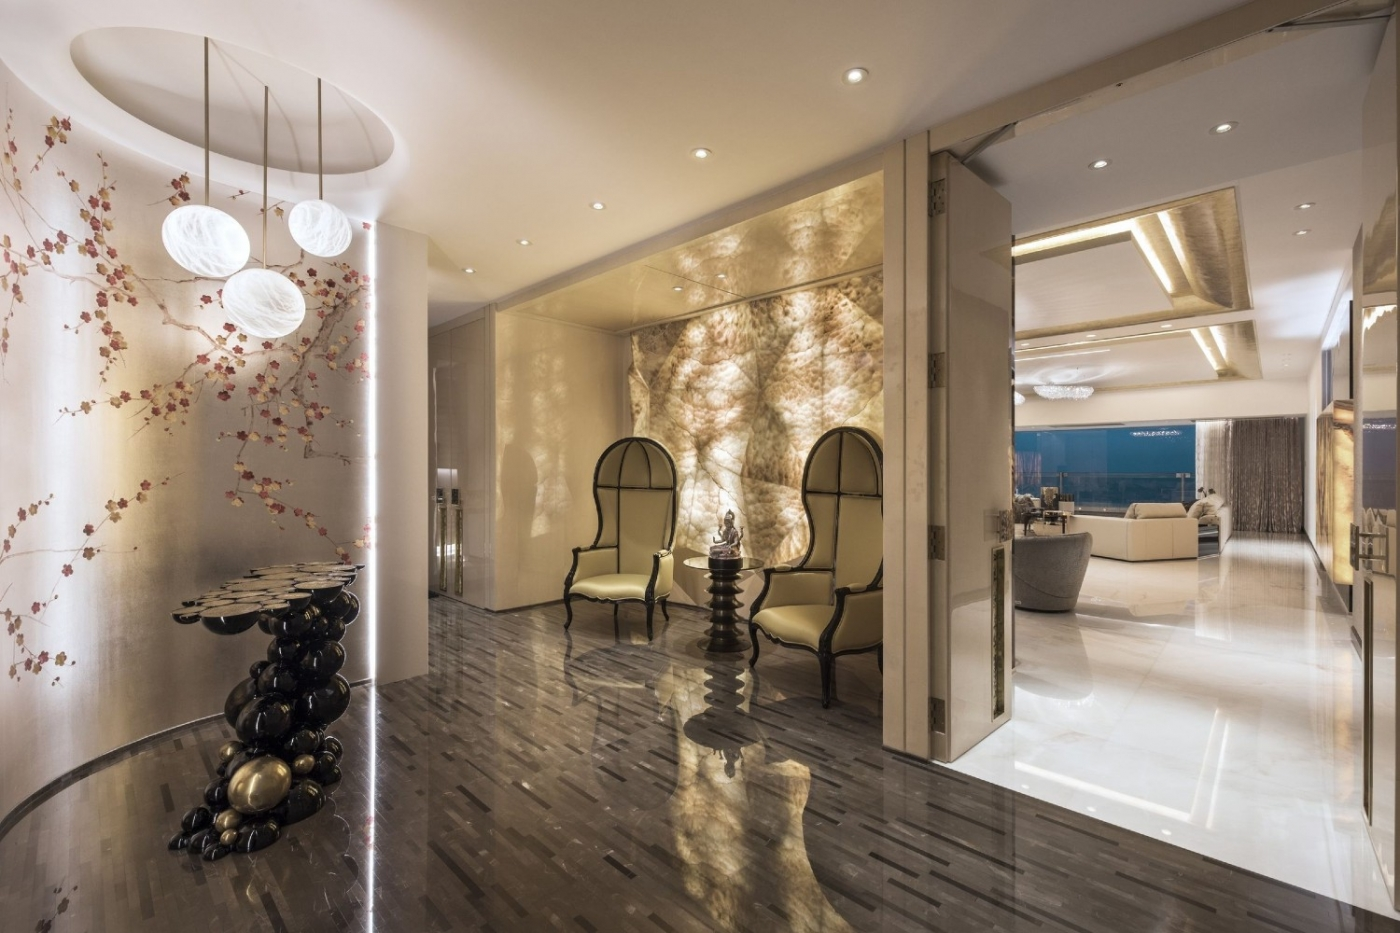 Our-Selection-Of-The-Best-Interior-Design-Projects-In-Mumbai-ft interior design project Our Selection Of The Best Interior Design Projects In Mumbai Our Selection Of The Best Interior Design Projects In Mumbai ft 1400x933